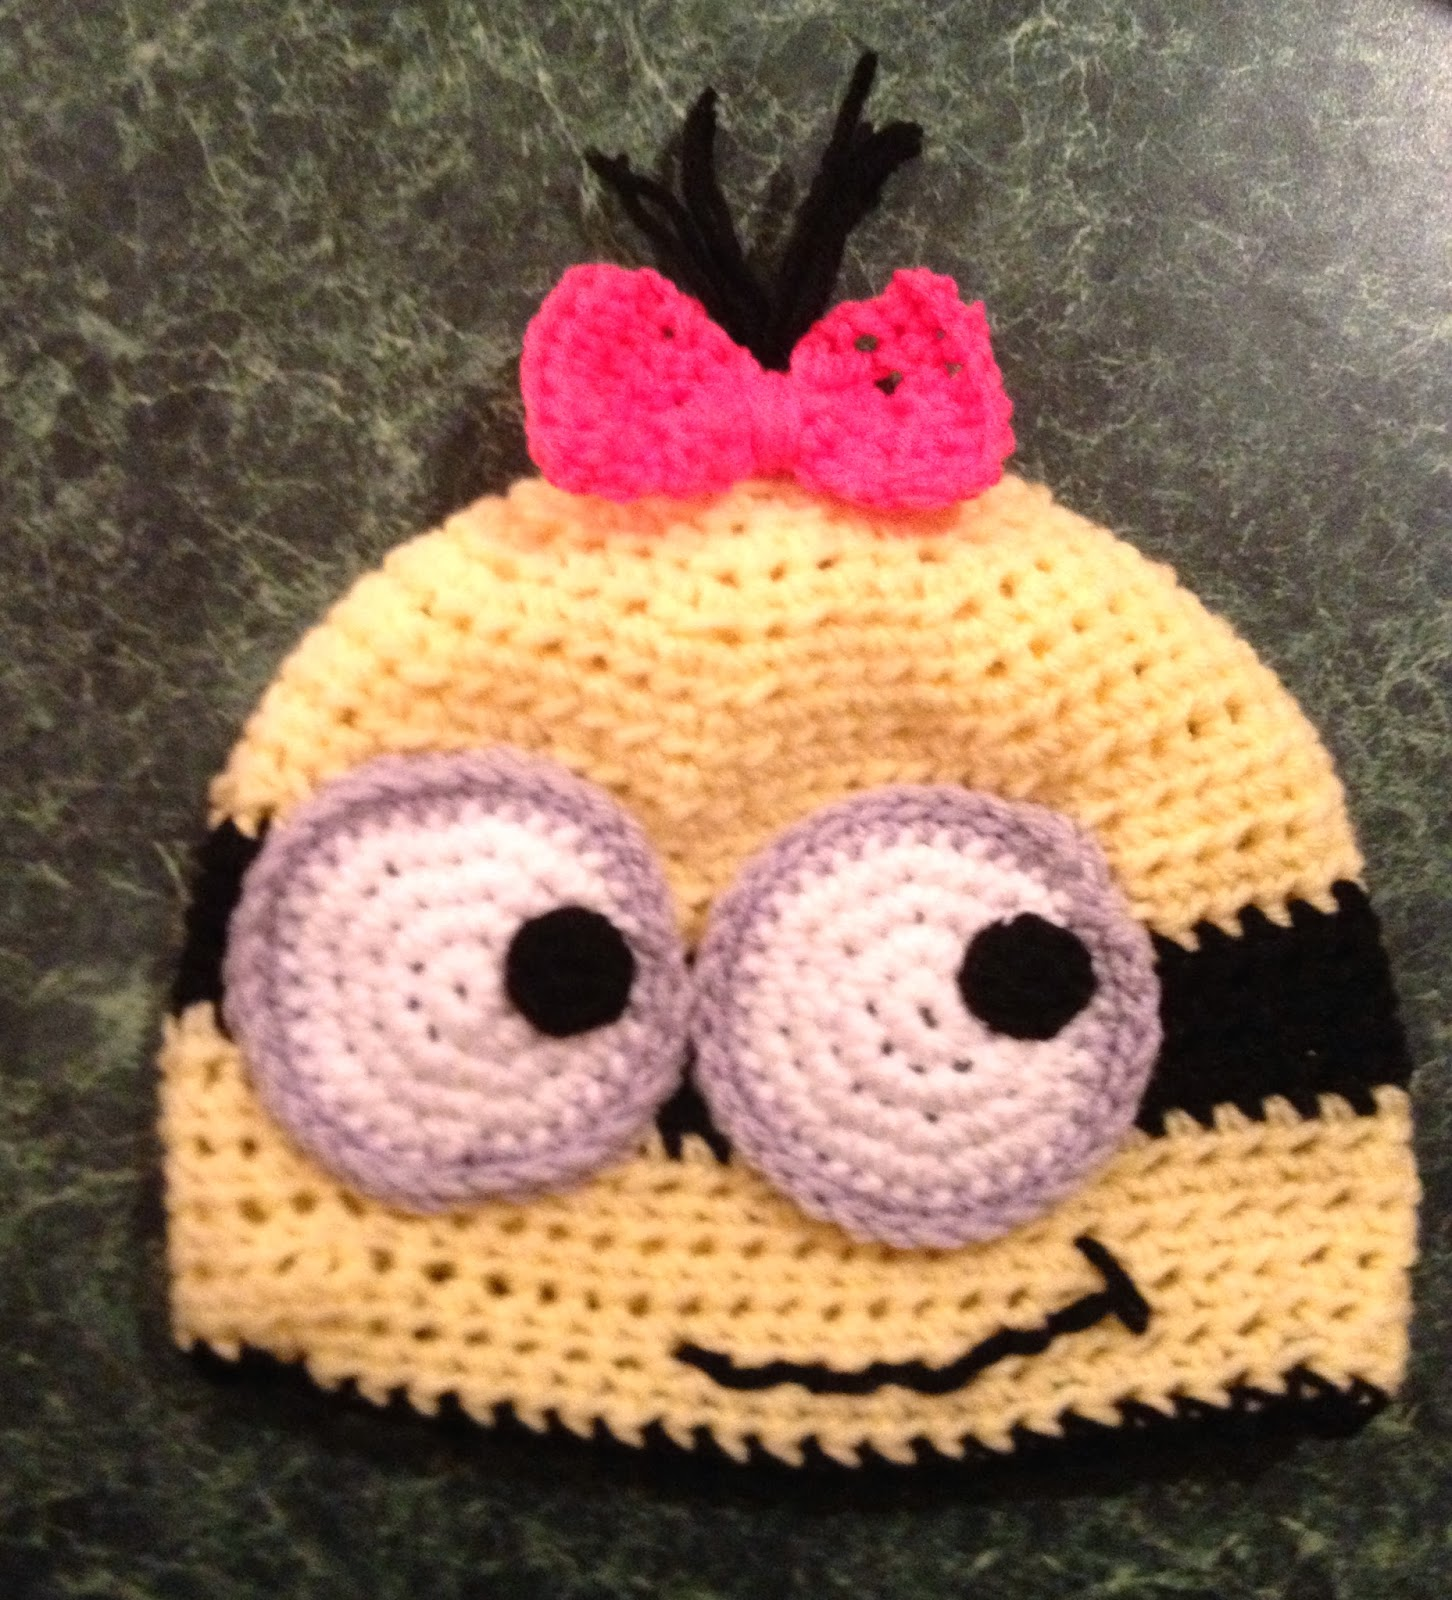 Free Crochet Patterns Mittens Hats : Free Crochet Connection: MINION HAT AND MITTENS SET